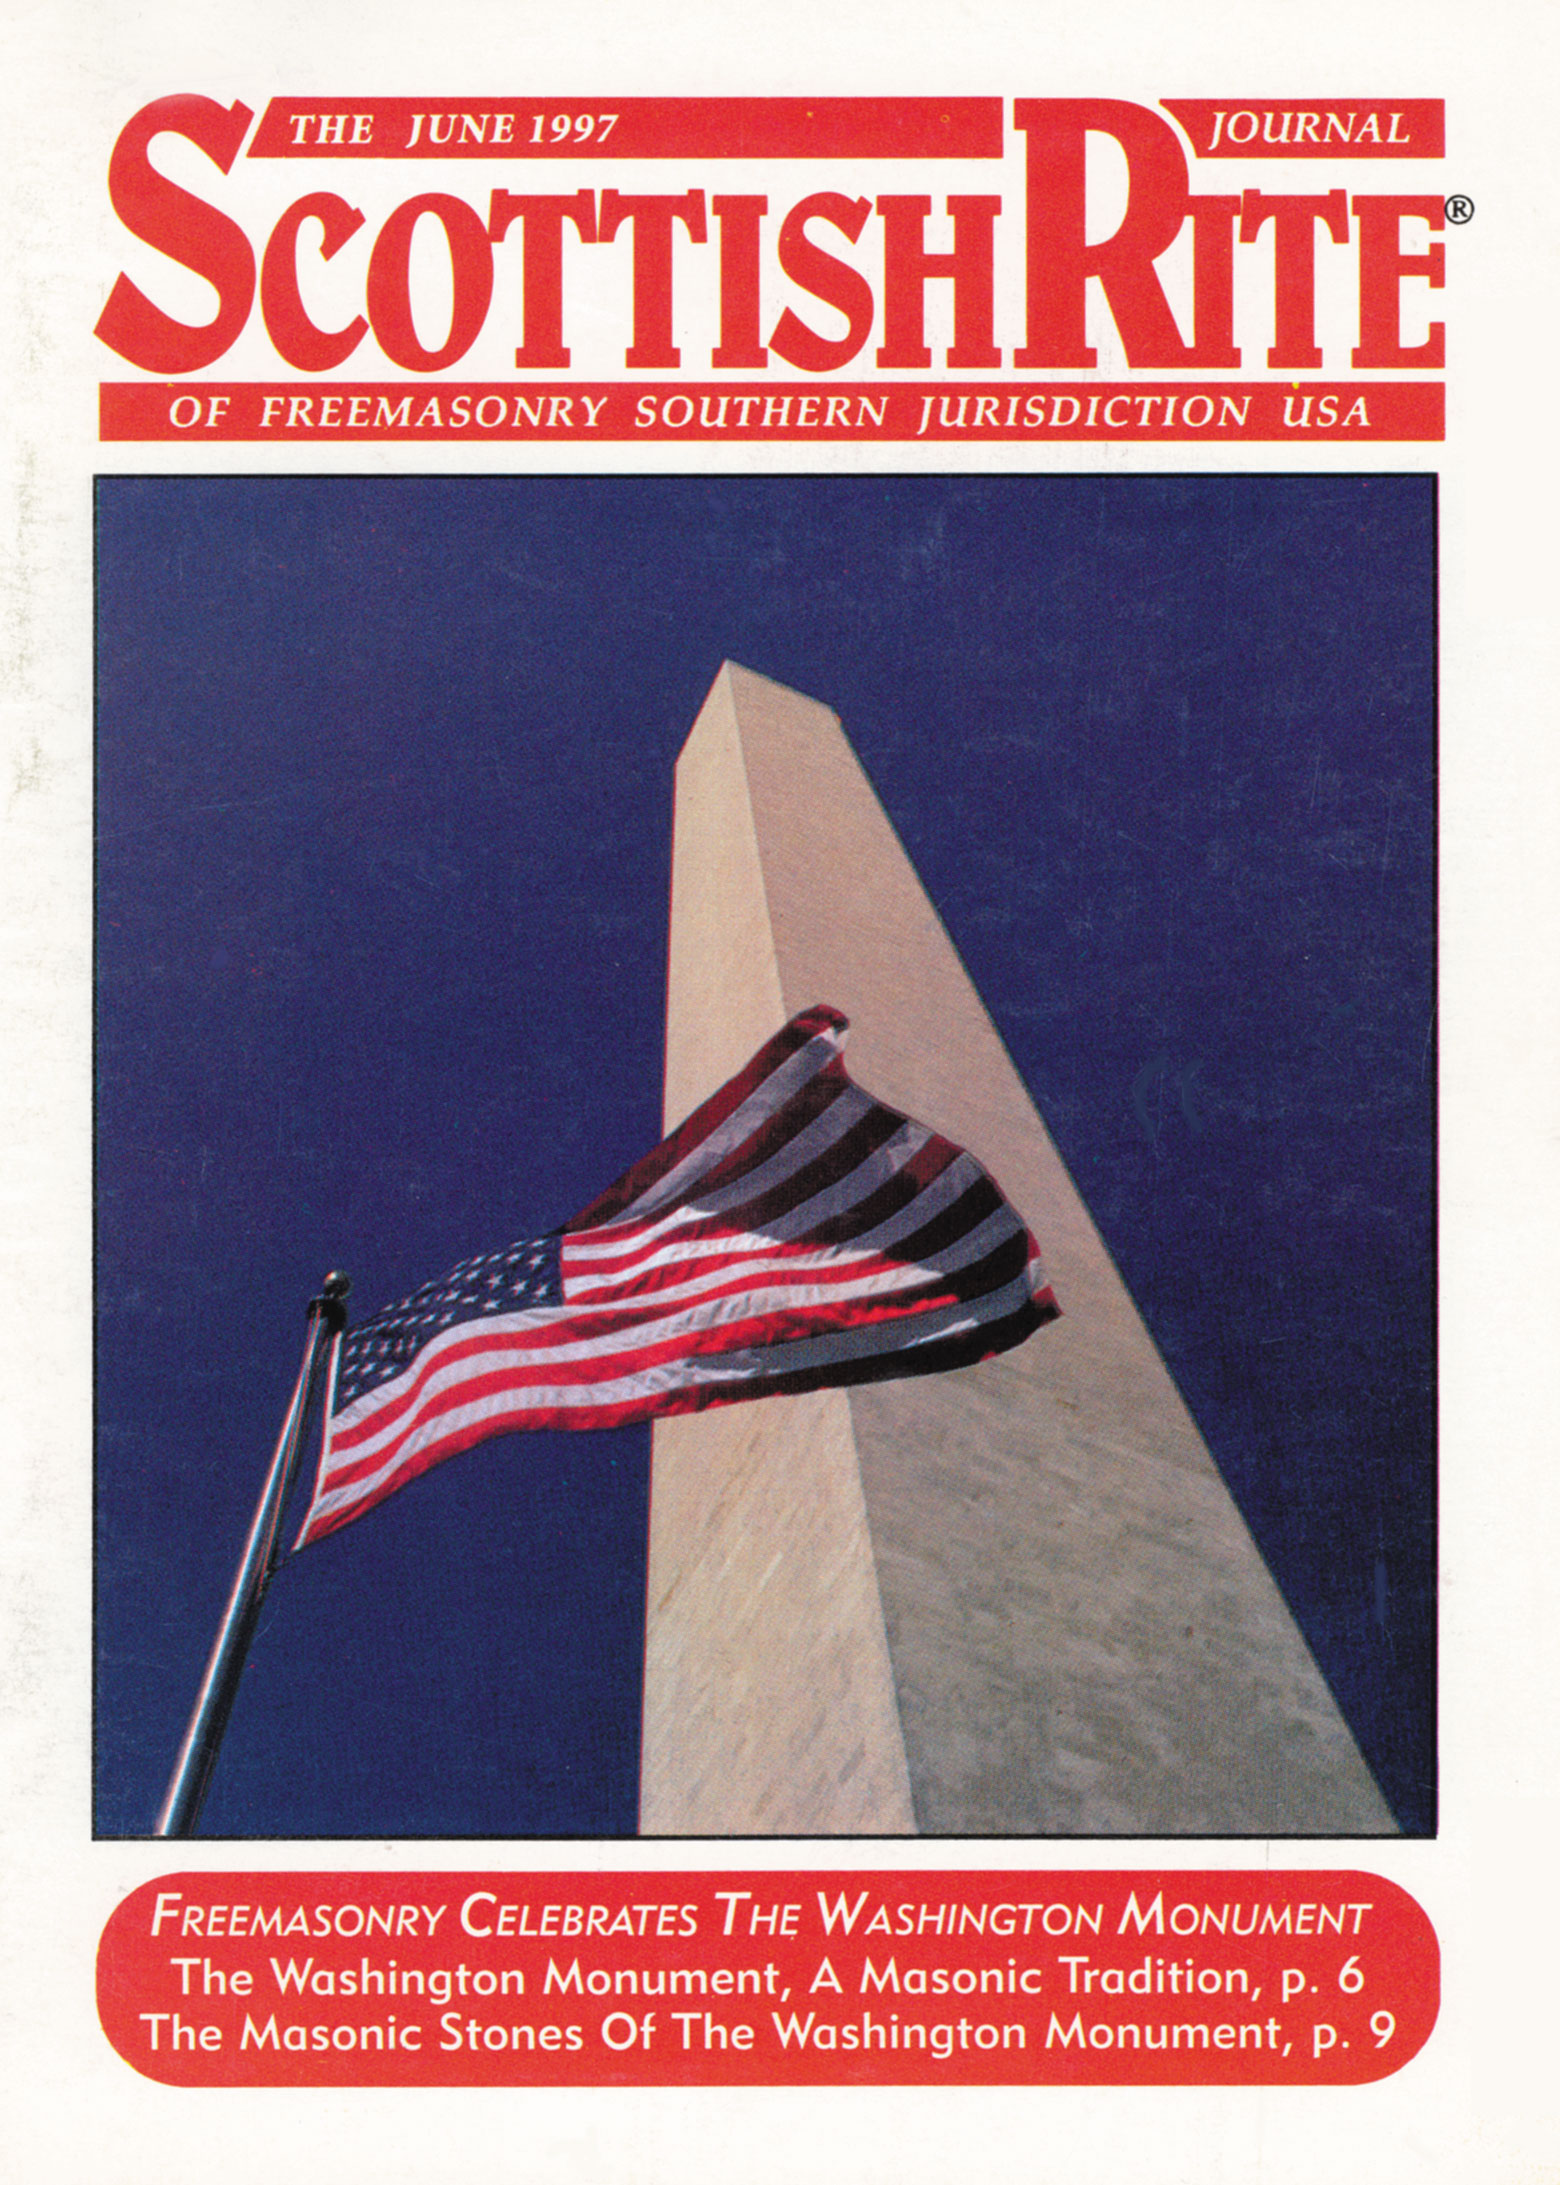 Scottish Rite Journal - Washington Monument